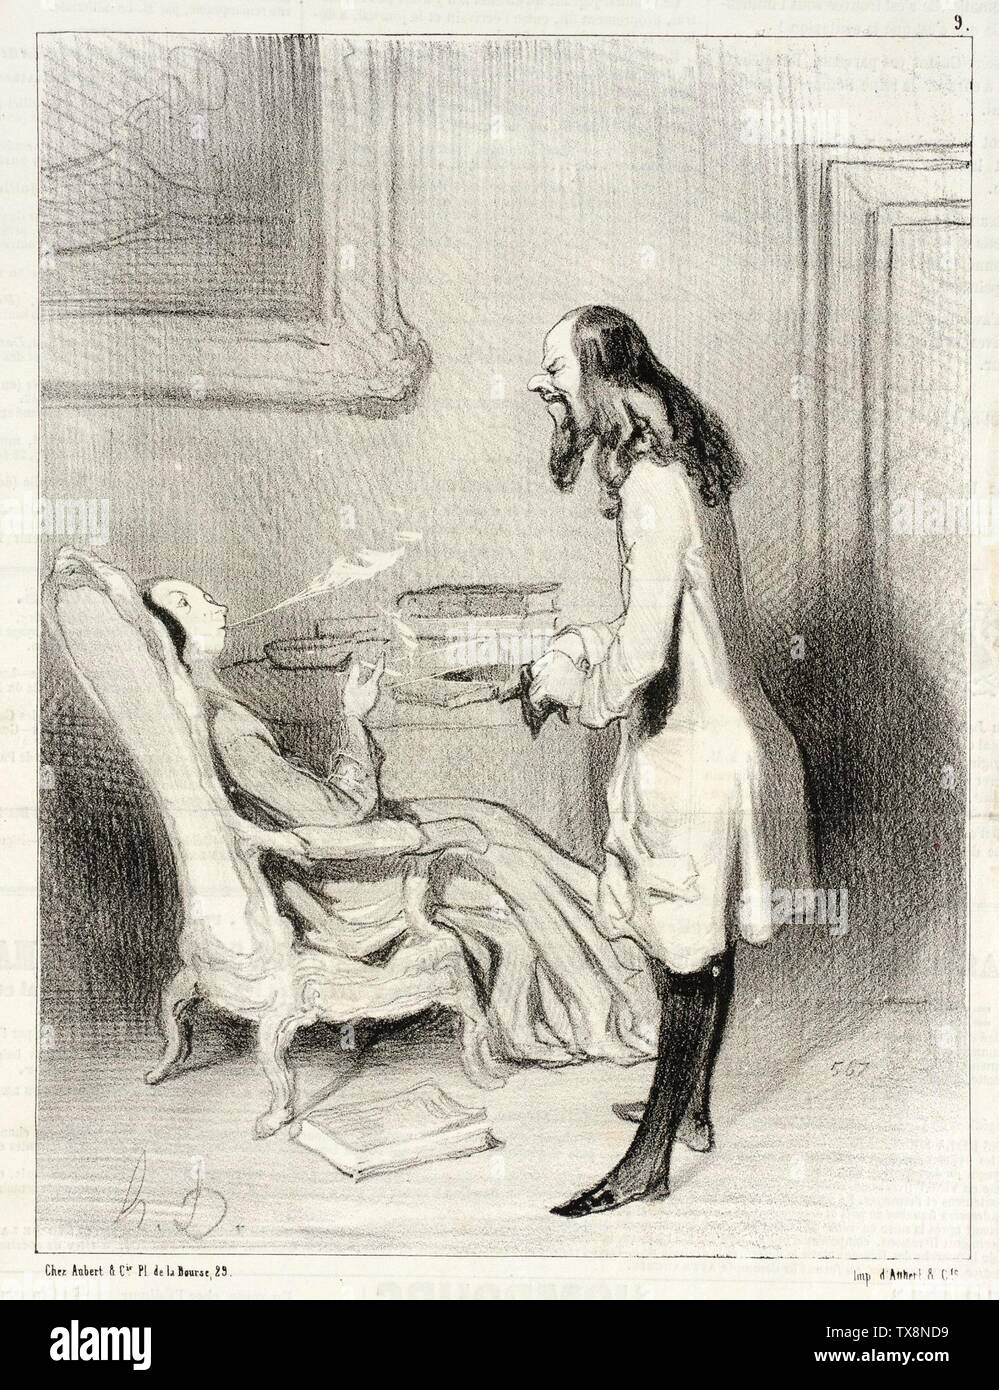 'Madame, comment trouvez-vouz cette cigarette?; English:  France, 1844 Series: Les Bas-blues, no. 9 Periodical: Le Charivari, 1 March 1844 Prints; lithographs Lithograph Sheet: 9 1/4 x 7 1/16 in. (23.5 x 17.94 cm) Gift of Mrs. Florence Victor from The David and Florence Victor Collection (M.91.82.169) Prints and Drawings; 1844date QS:P571,+1844-00-00T00:00:00Z/9; ' - Stock Image